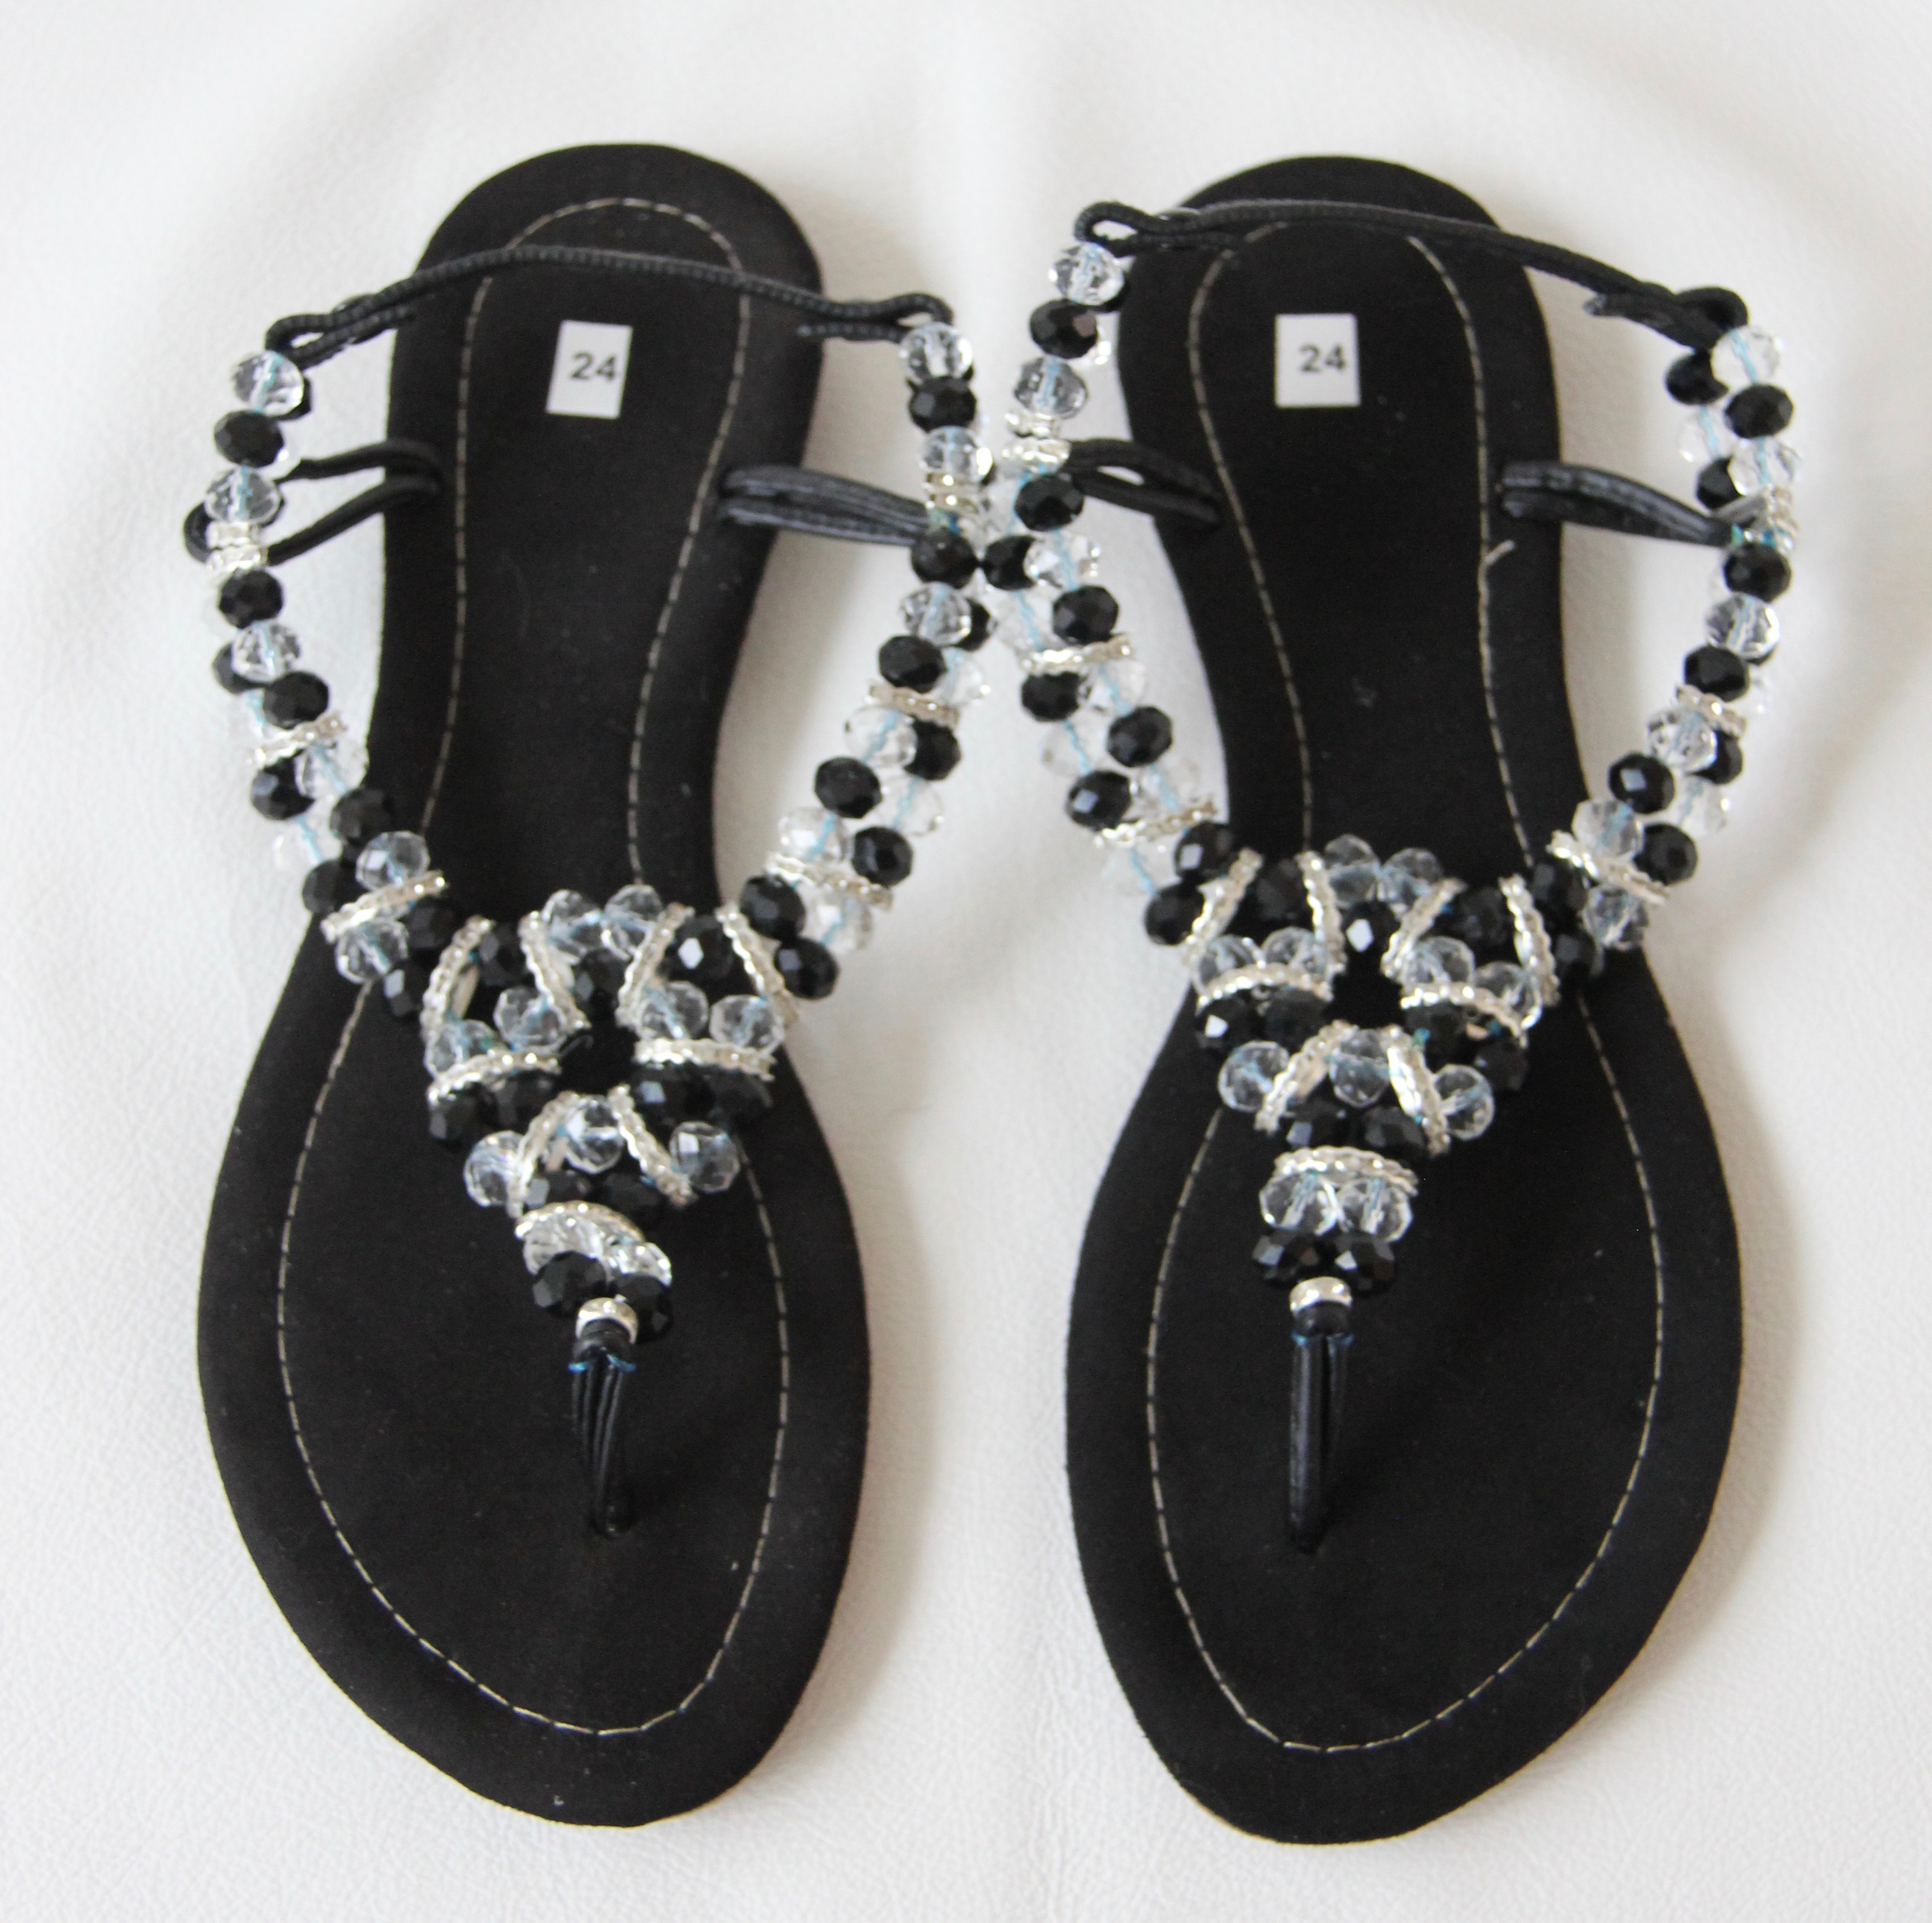 Sandals made by the women